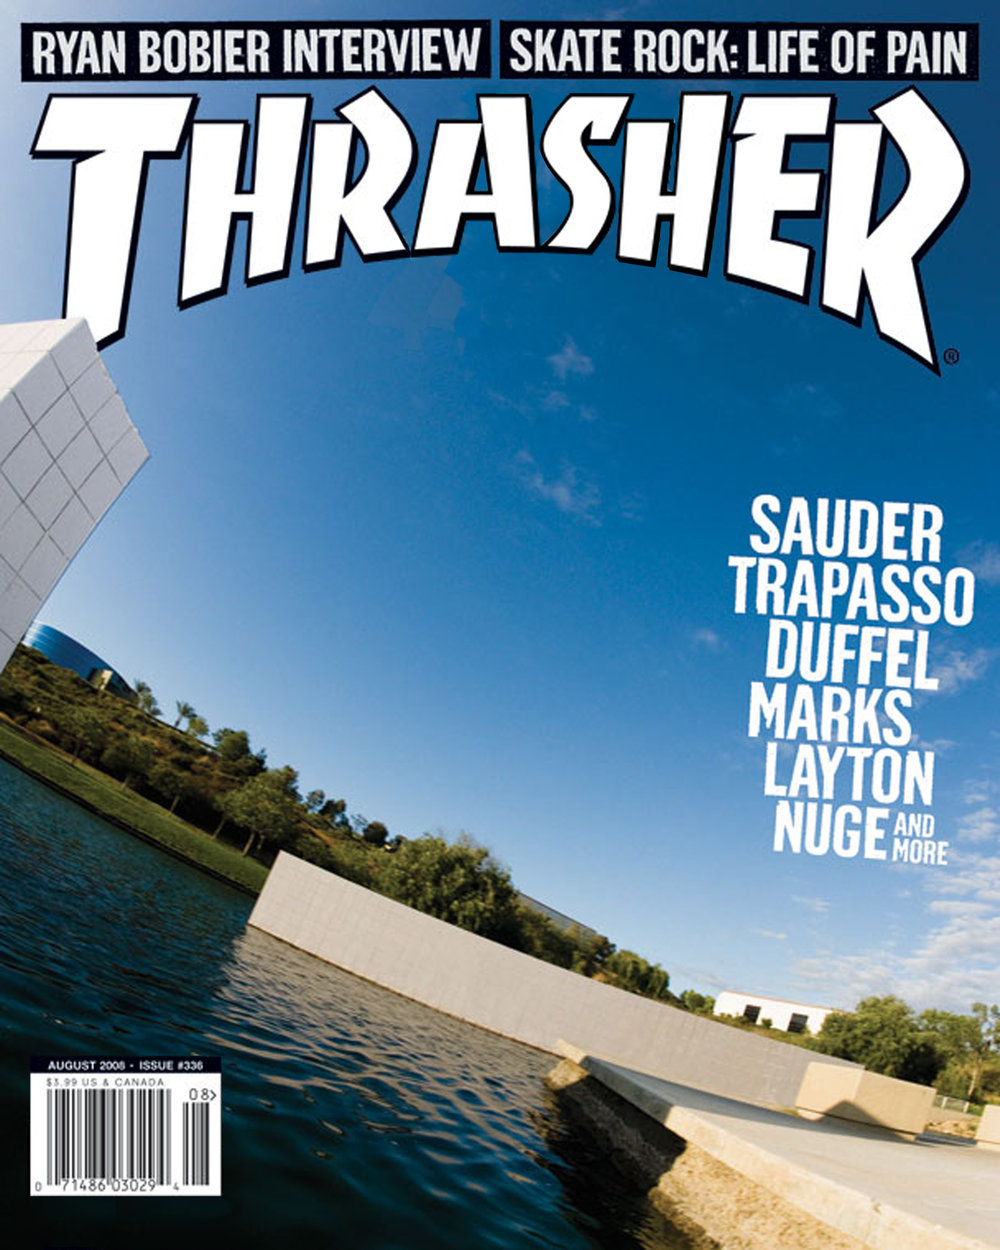 Lonely Thrasher Series (2017)